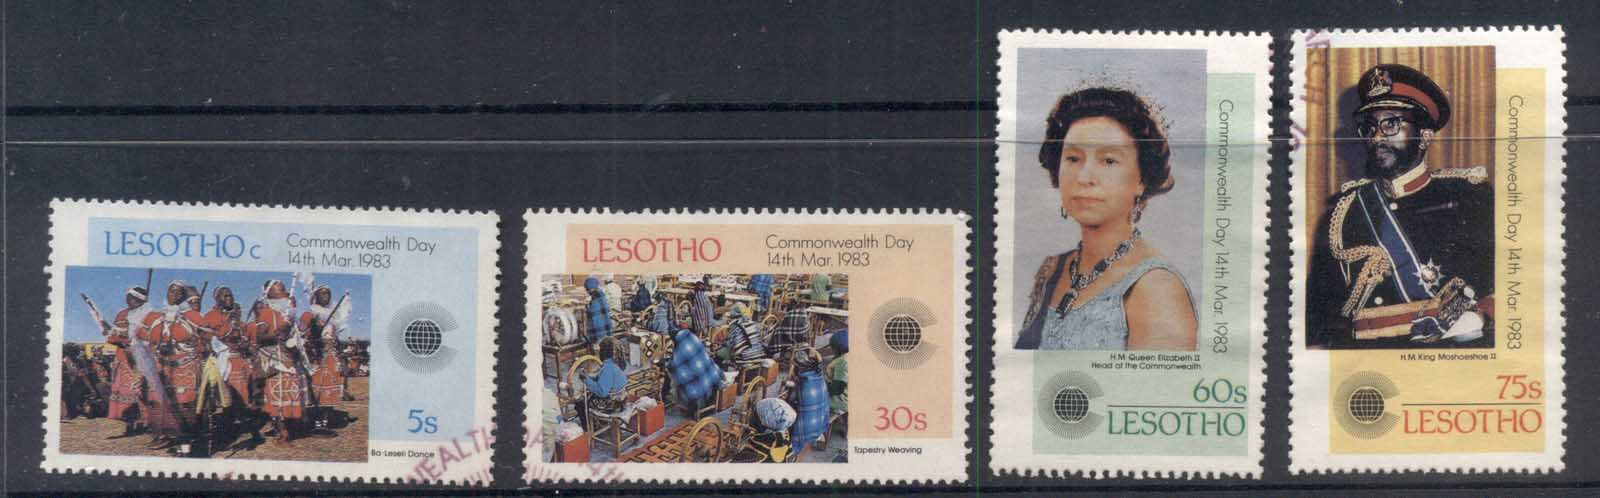 Lesotho 1983 Commonwealth Day FU